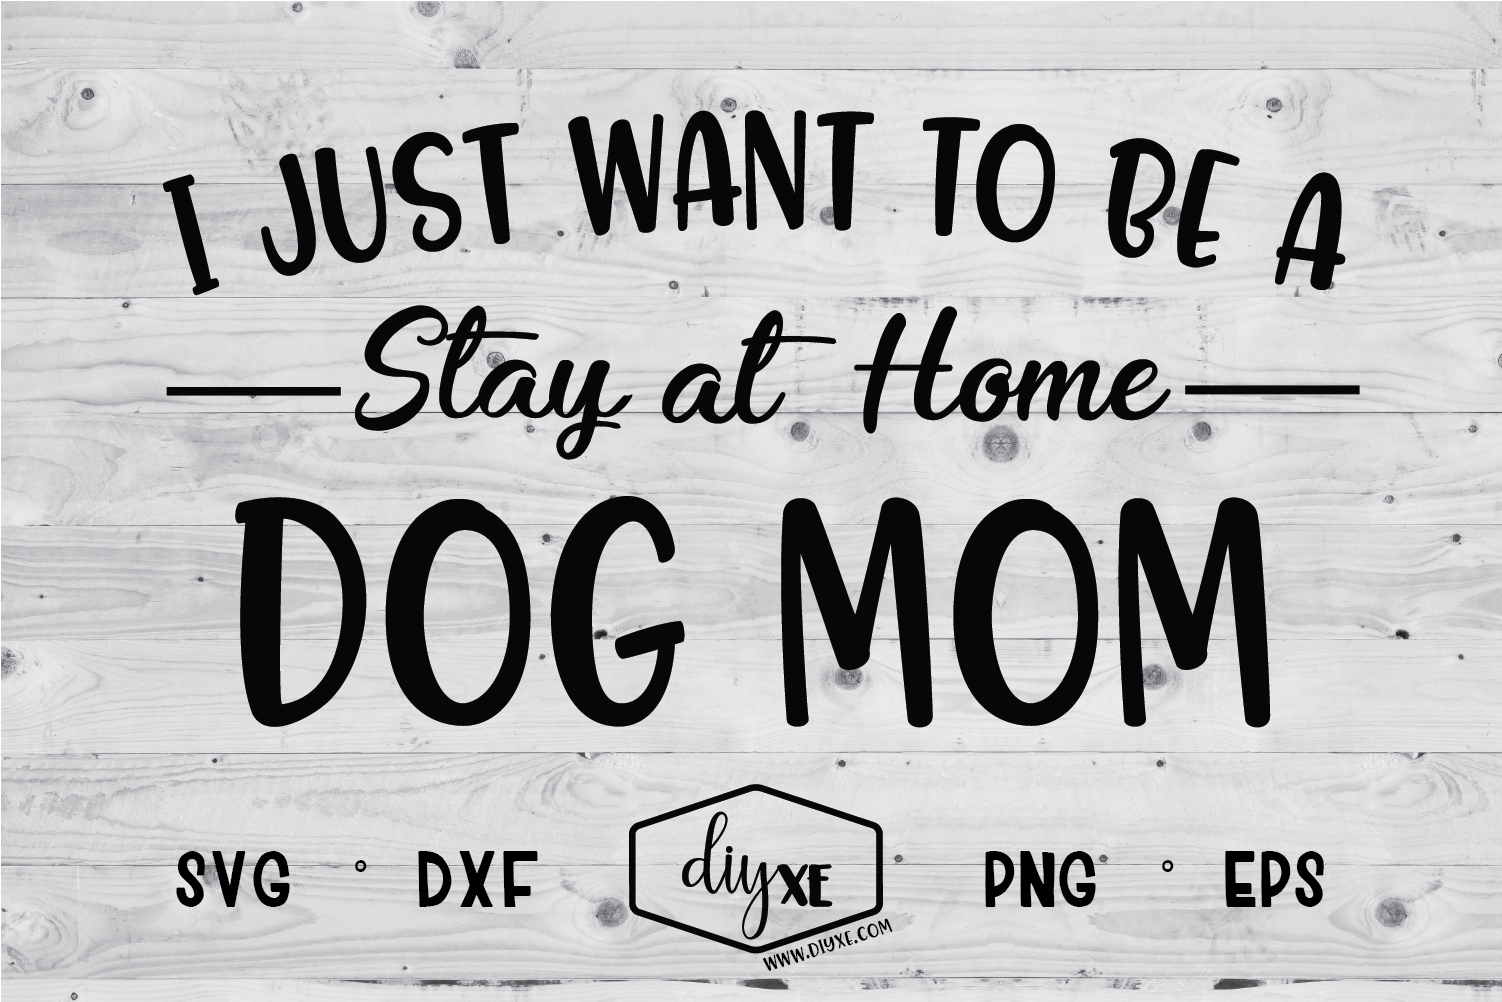 493ad665 Stay At Home Dog Mom SVG Graphic by Sheryl Holst - Creative Fabrica